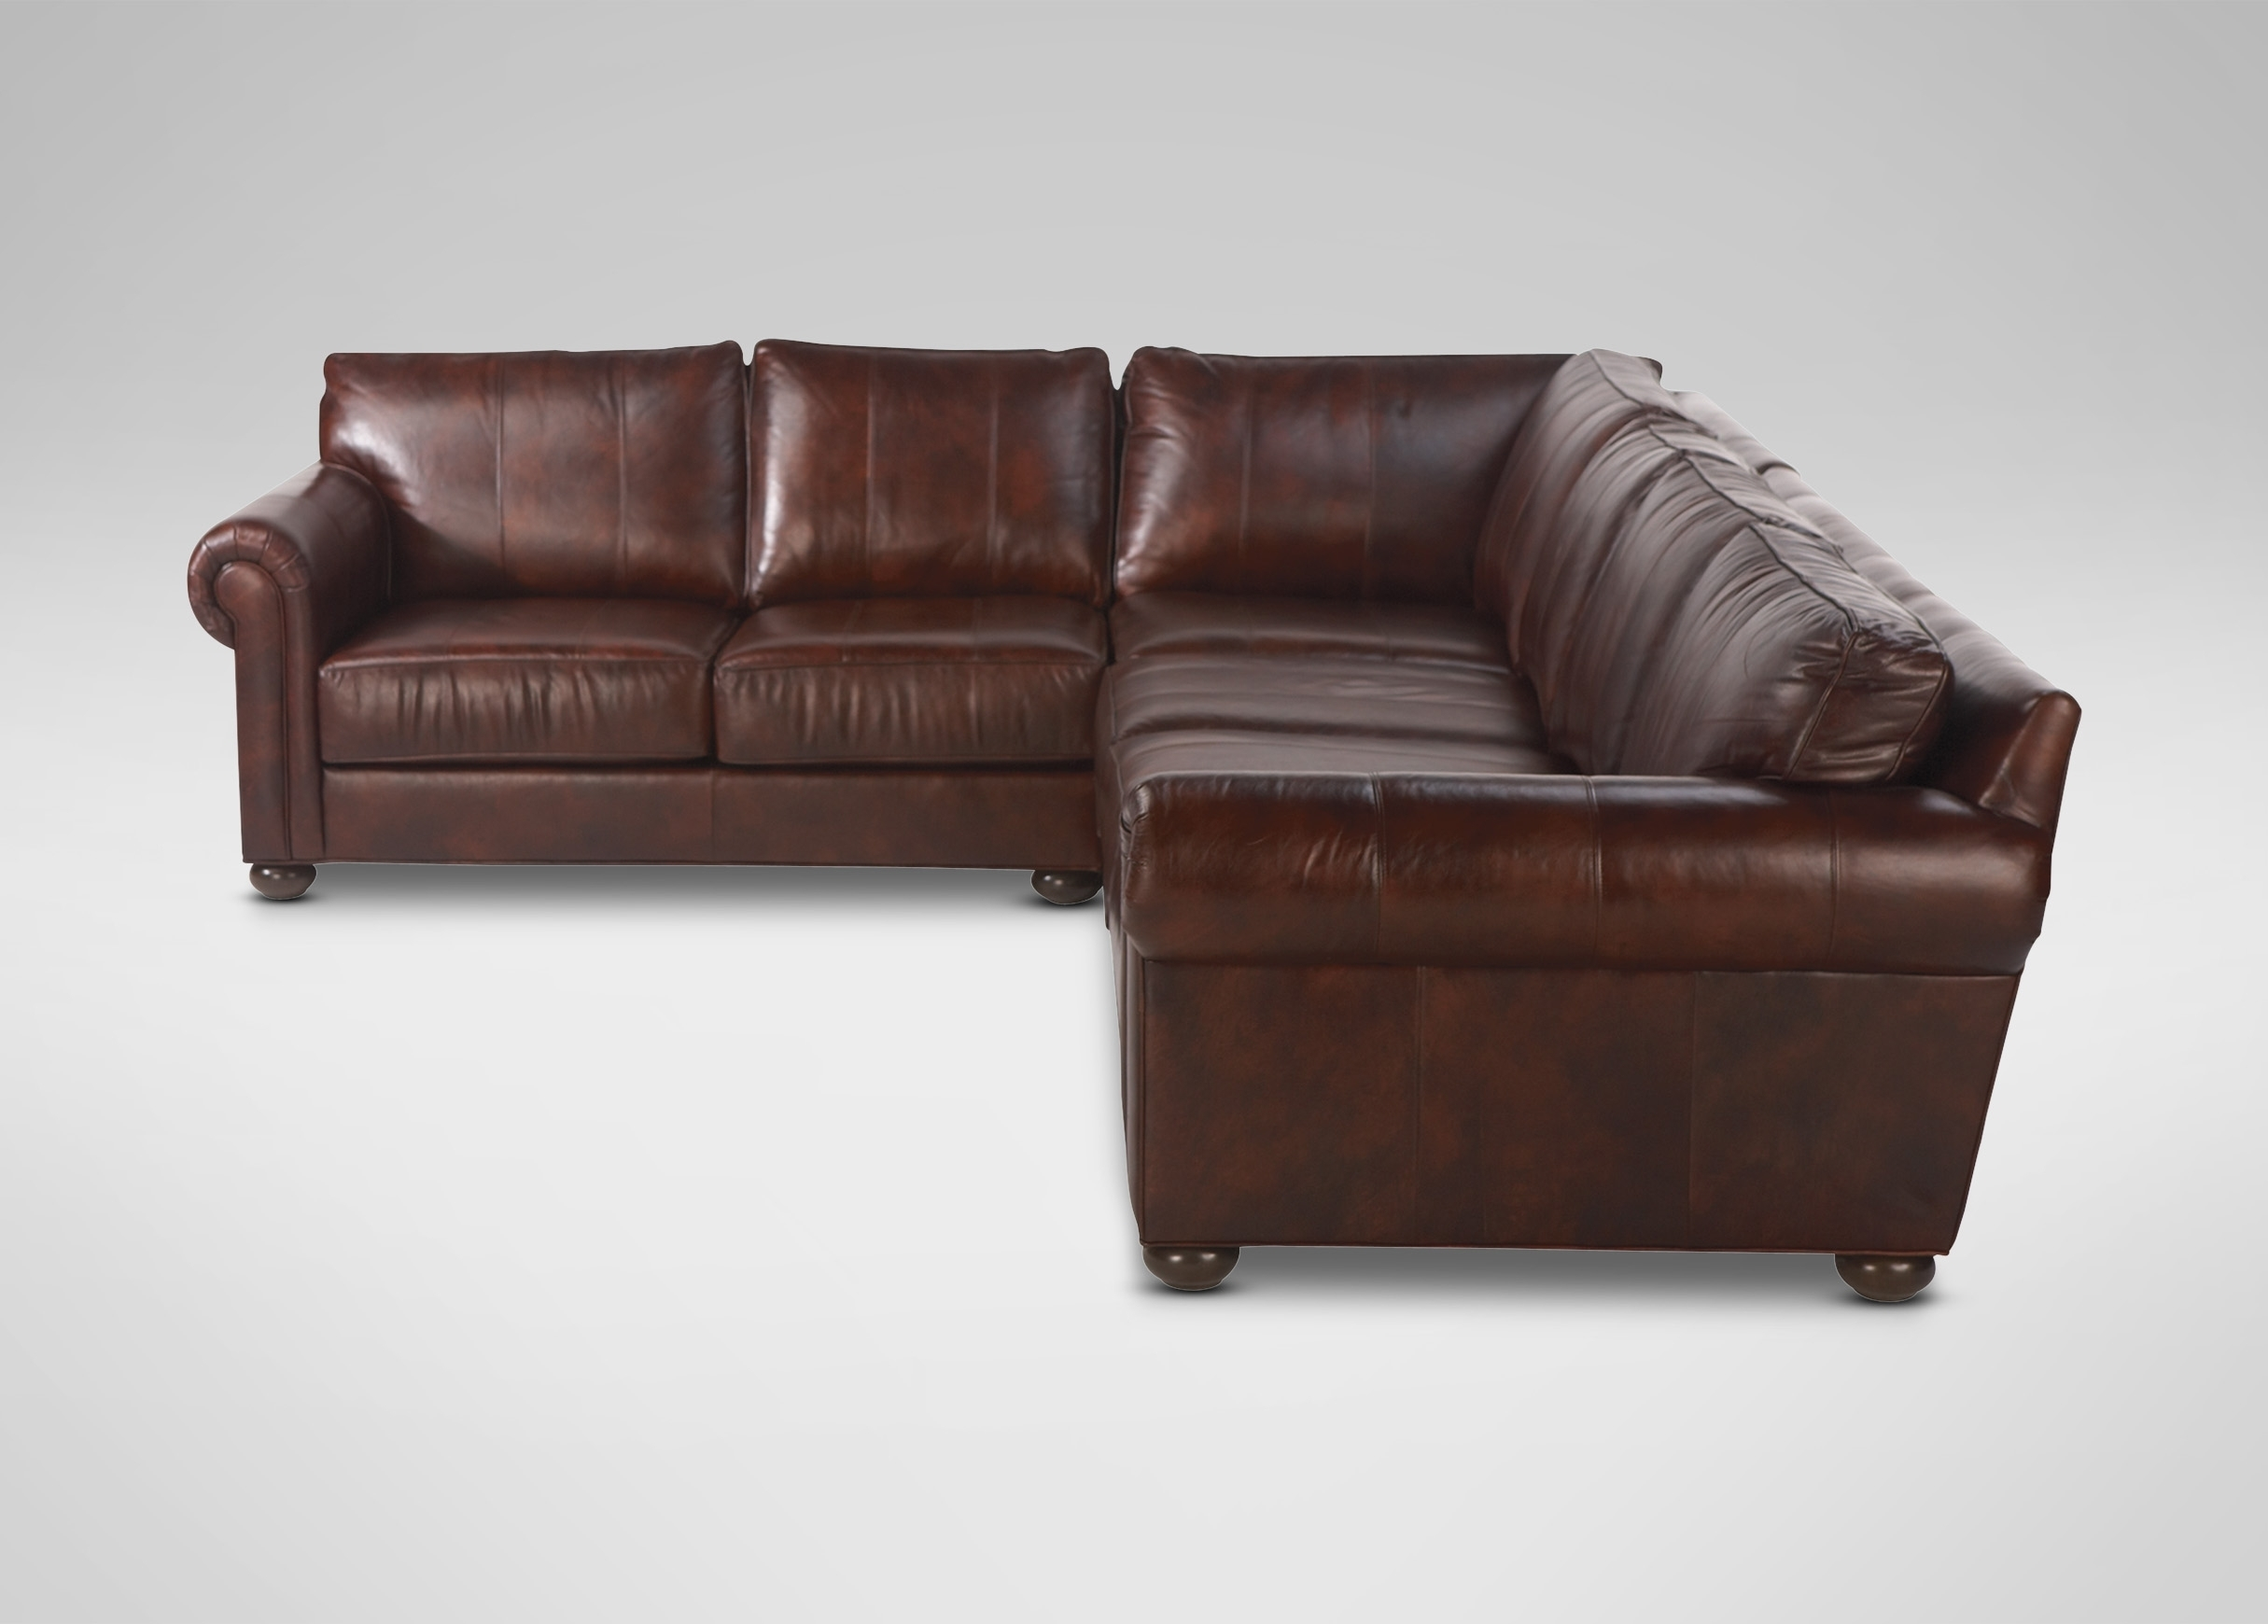 Ethan Allen Sectional Sofas Leather • Sectional Sofa In Richmond Va Sectional Sofas (Image 7 of 10)